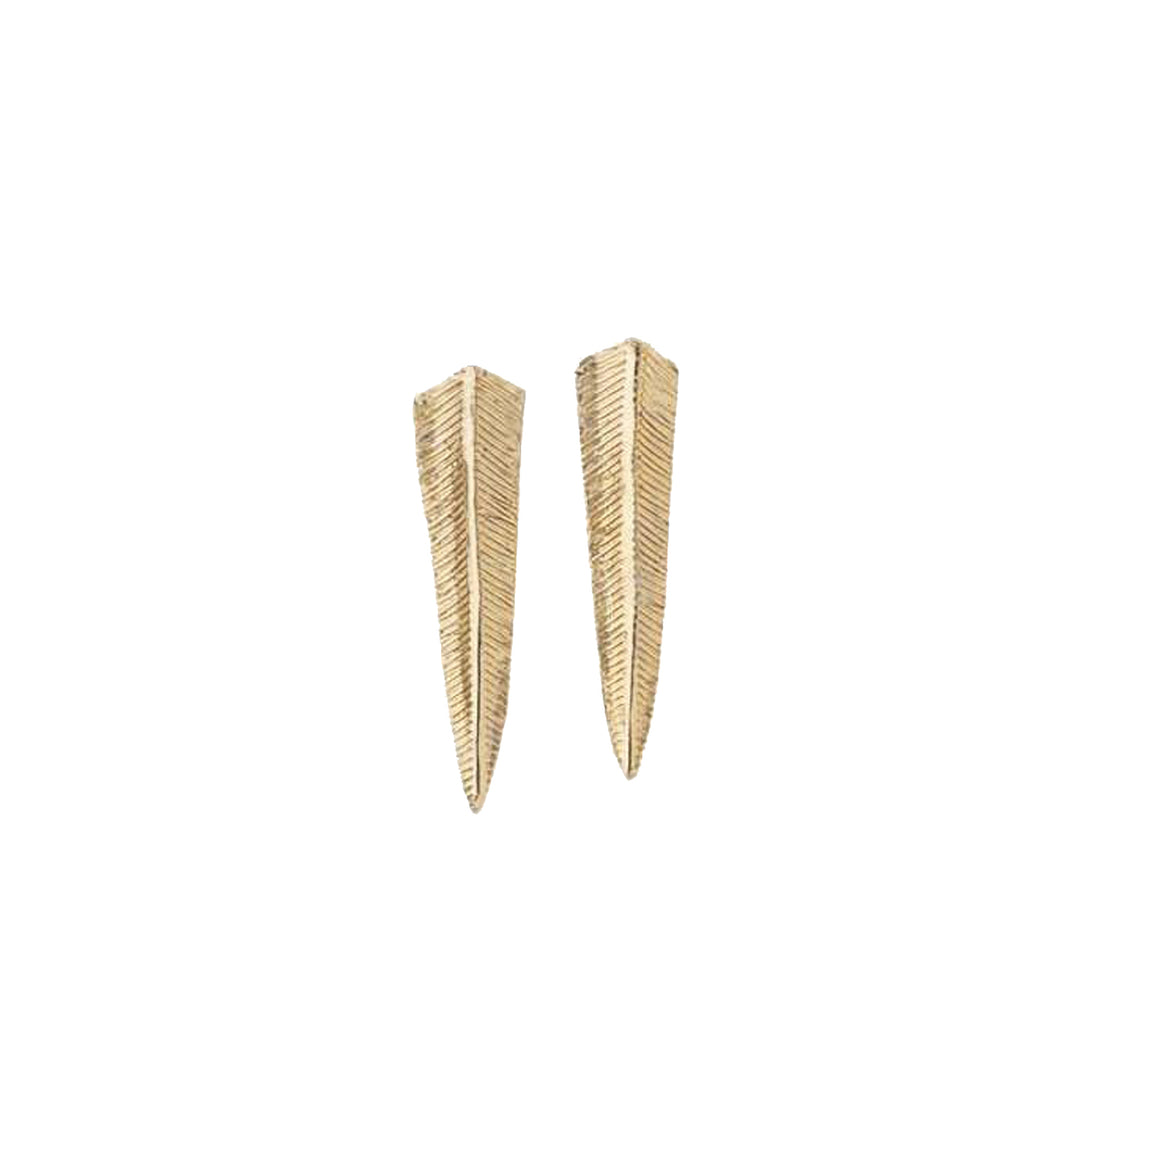 Fern Earrings - Alexandra Koumba Designs